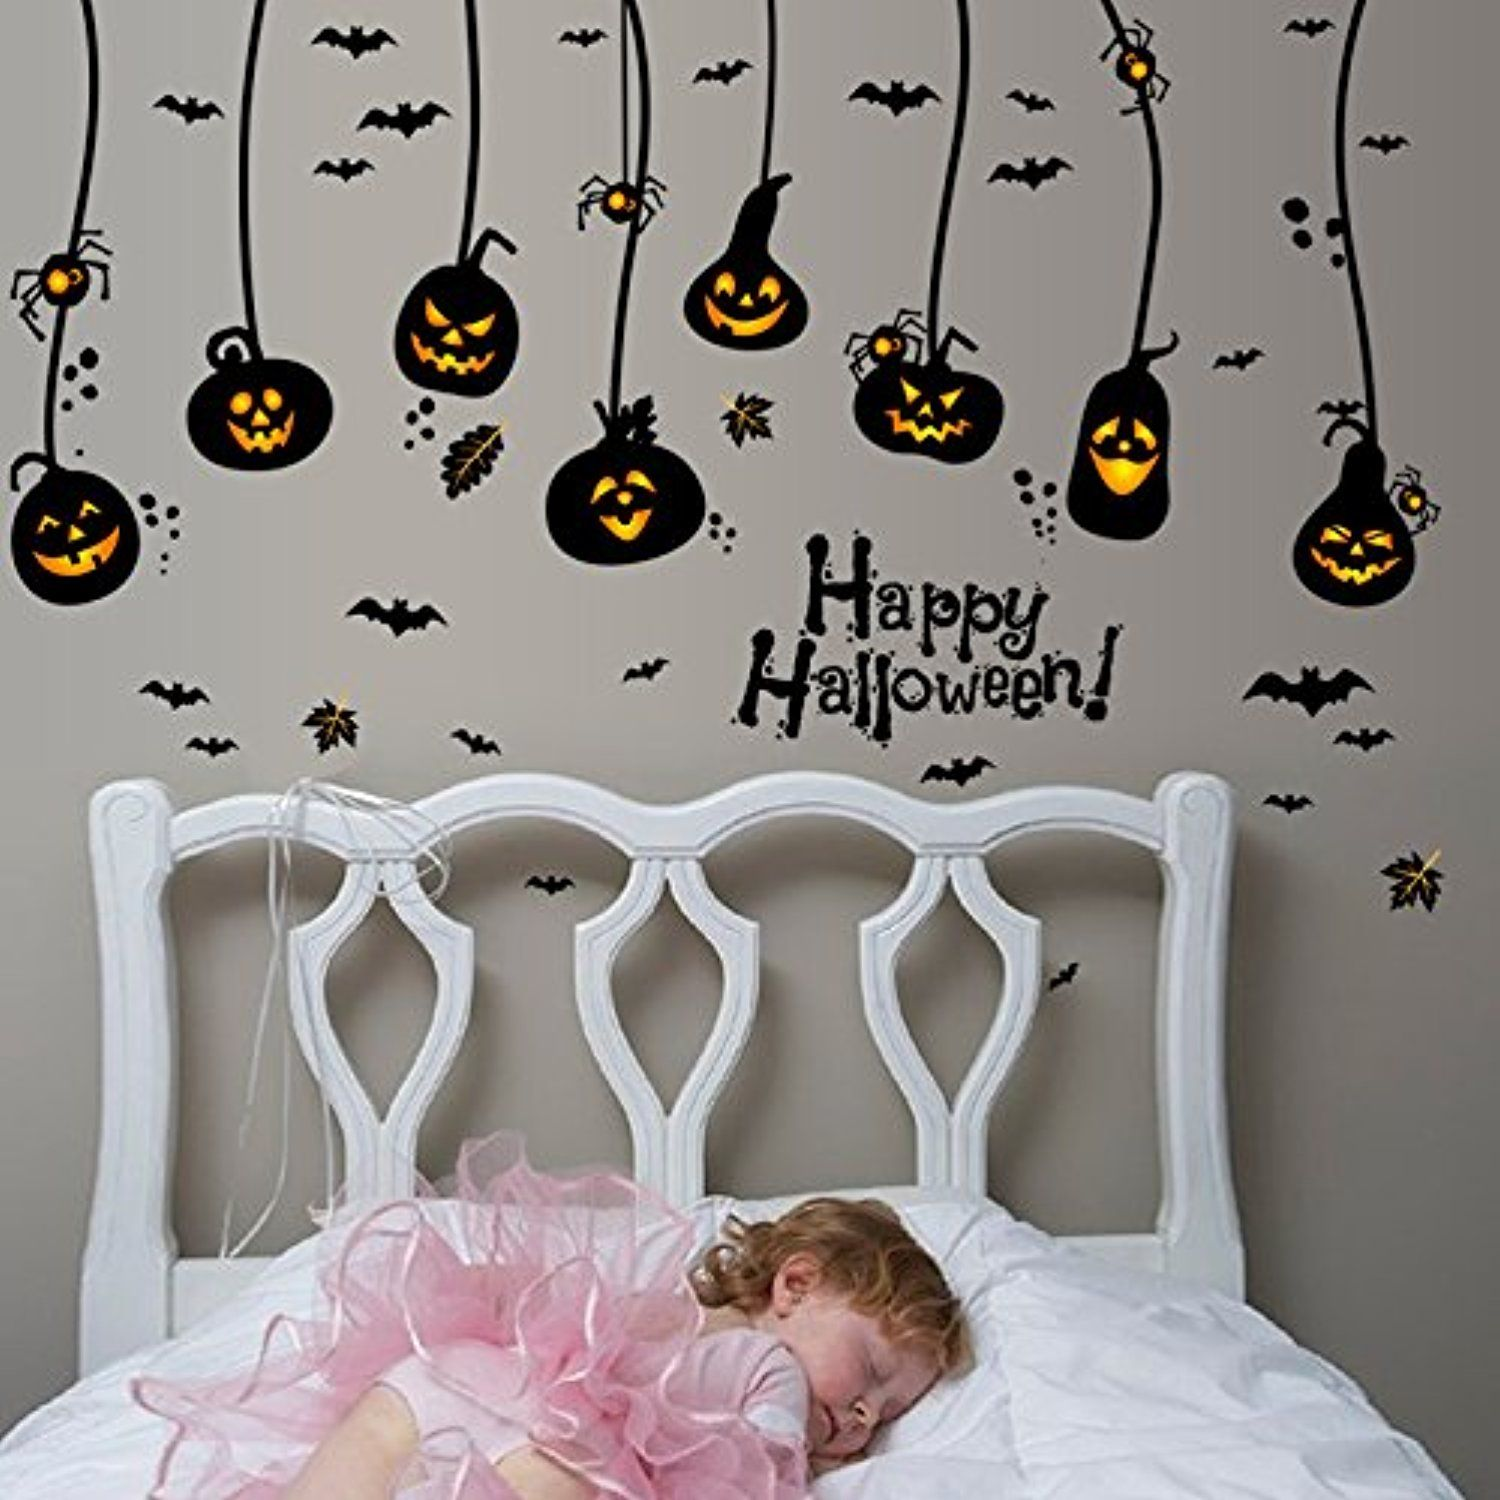 Nursery window ideas  happy halloween diy wall decals wall stickers indoor party